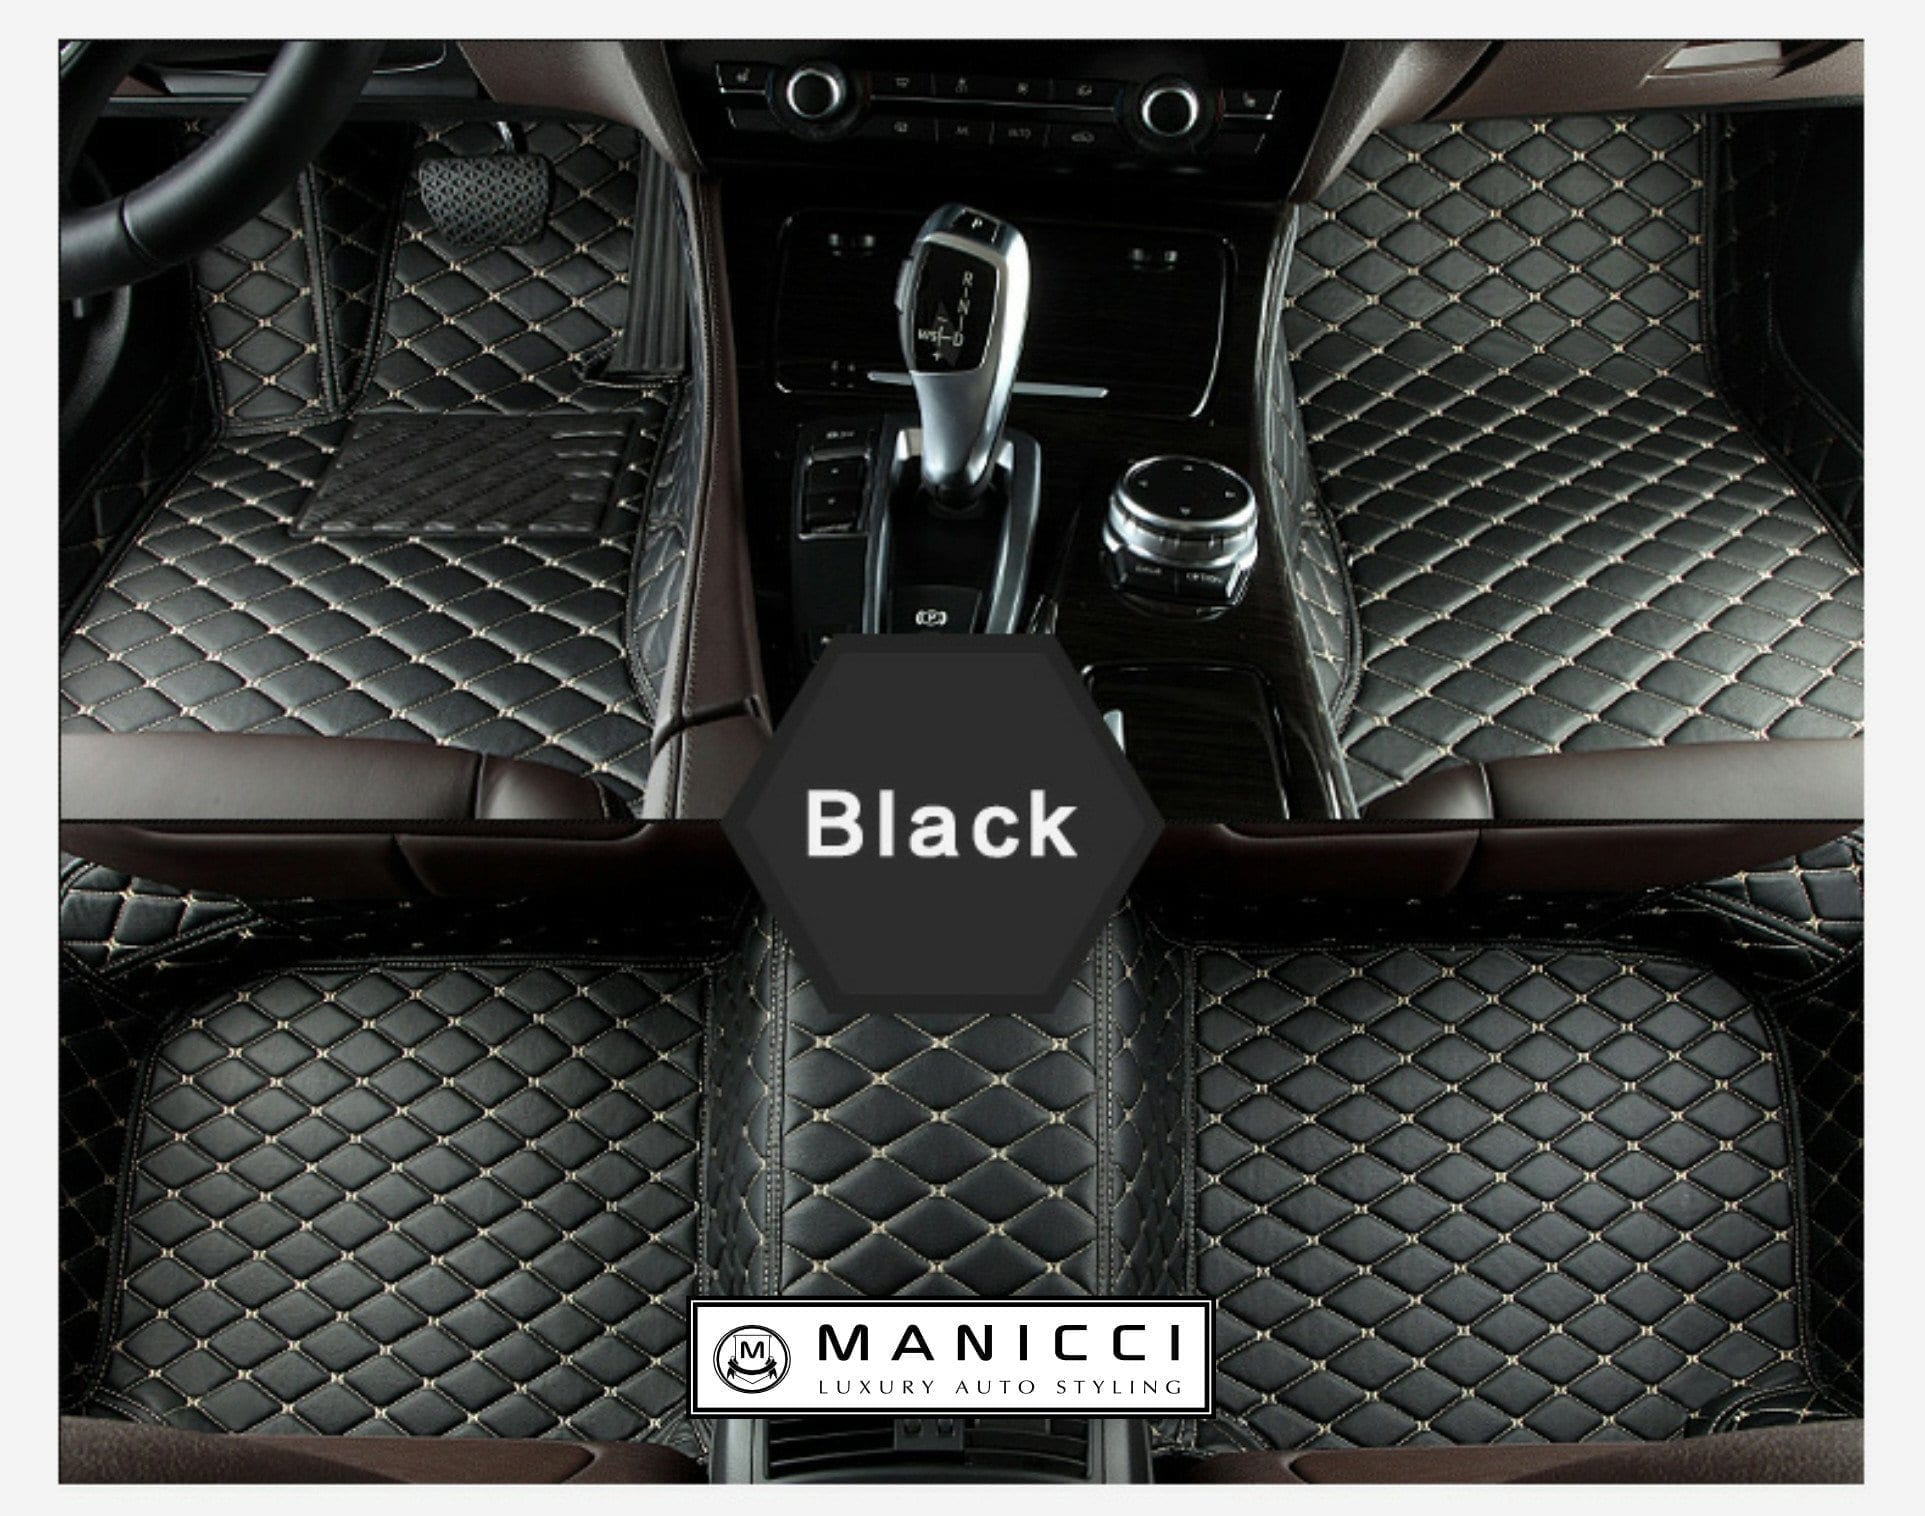 manicci luxury custom fitted car mats black diamond free delivery usd manicci. Black Bedroom Furniture Sets. Home Design Ideas